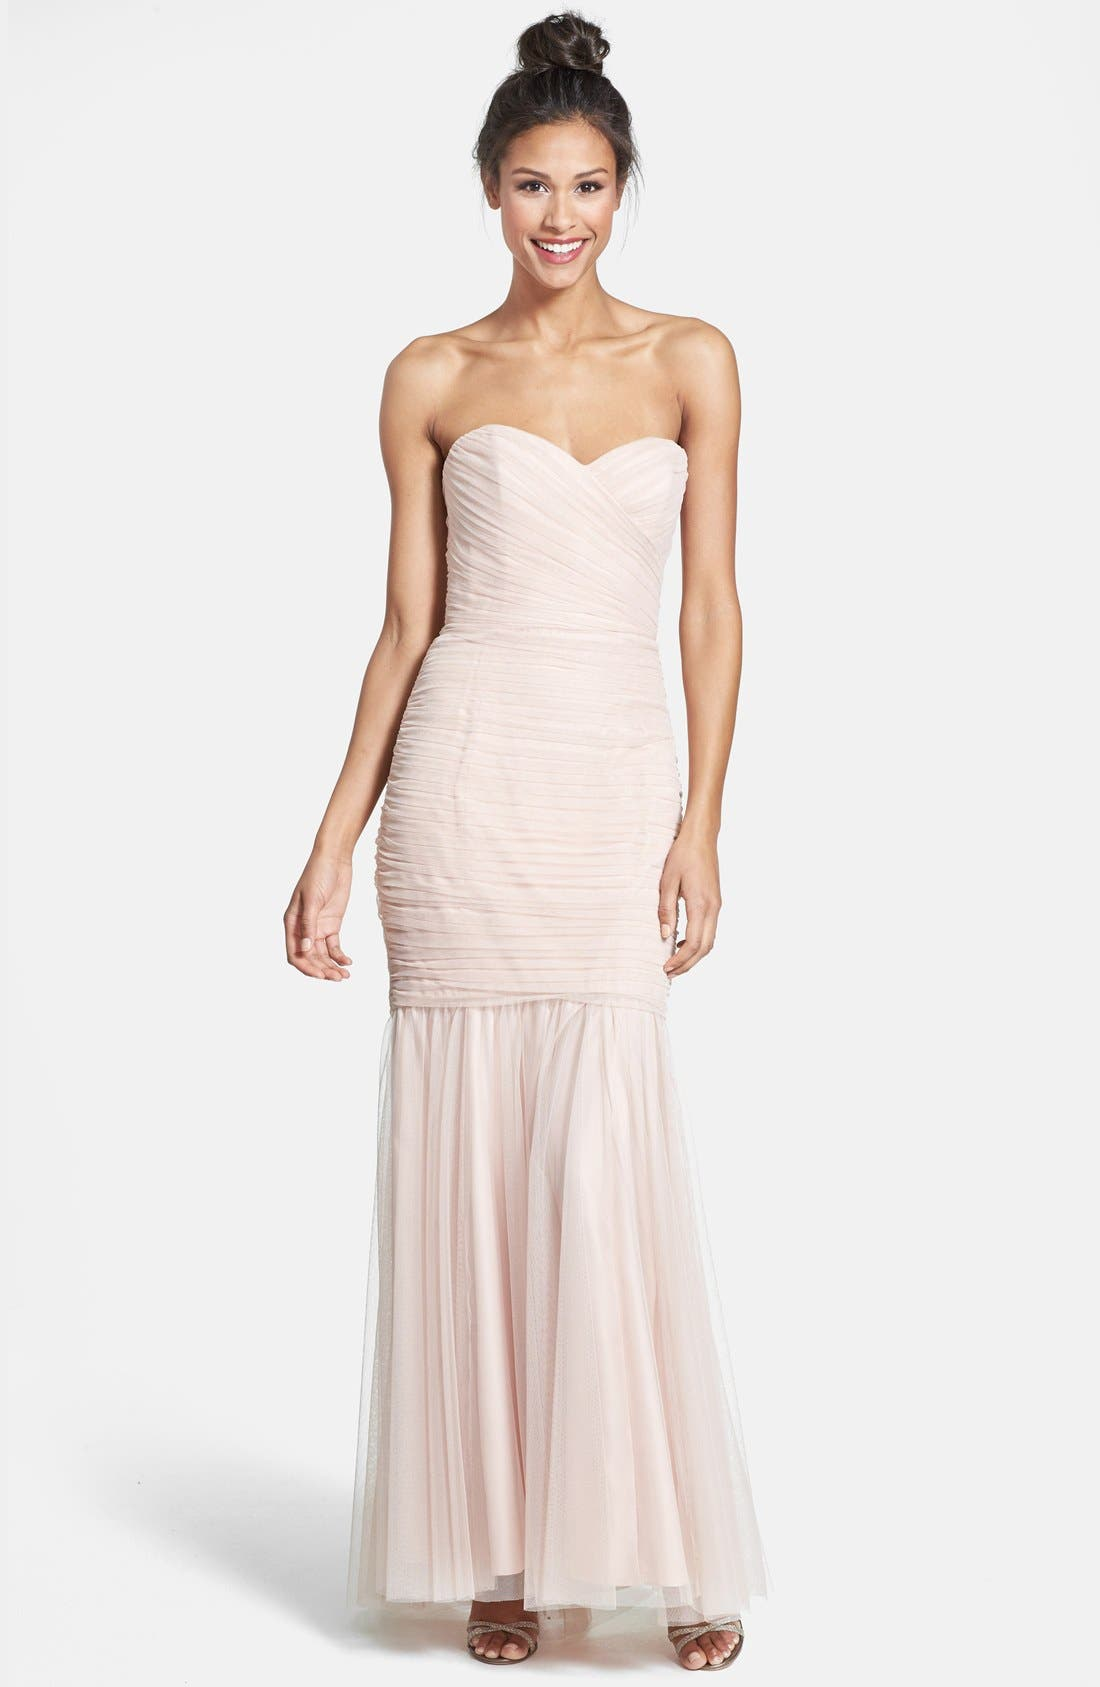 Womens bridesmaid sale dresses nordstrom ombrellifo Gallery